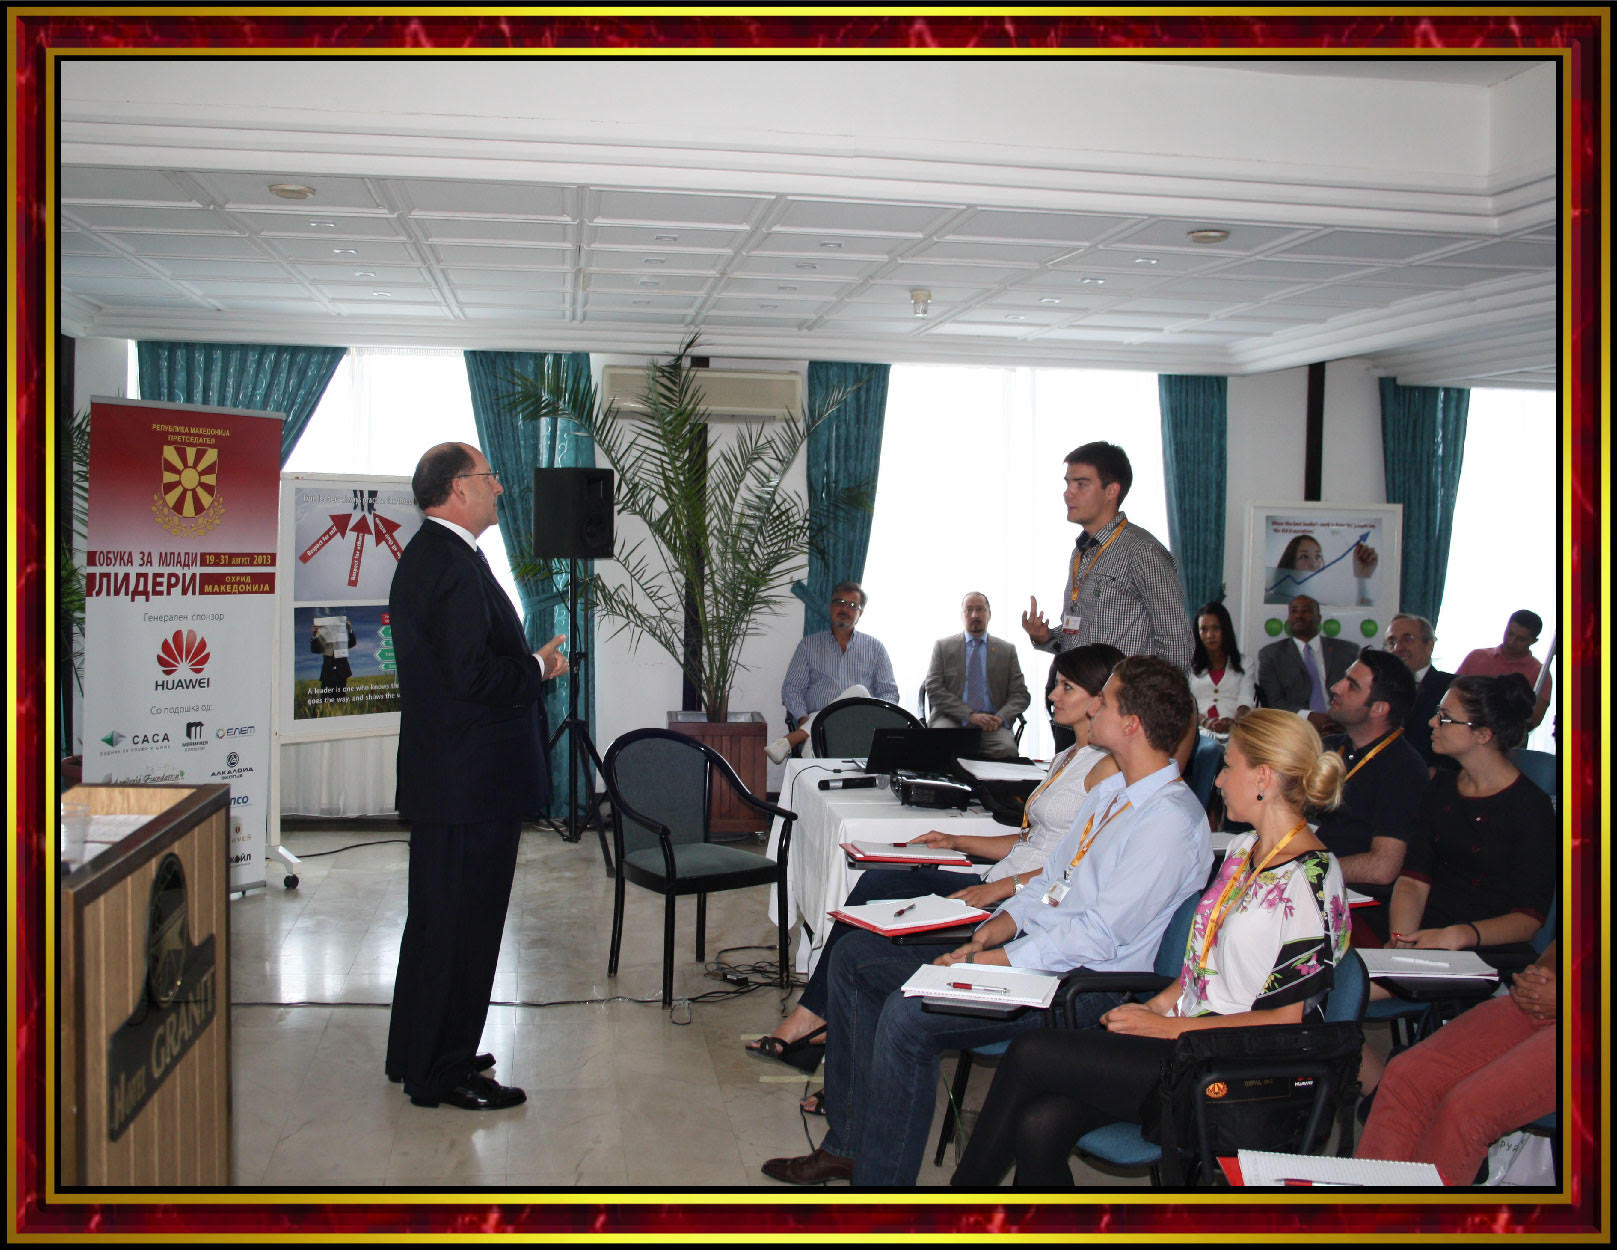 Professor Robert E. Lee Goodwin III Lecturing at the President's School for Young Leaders - Lake Ohrid, Republic of Macedonia - 19 AUG 2013